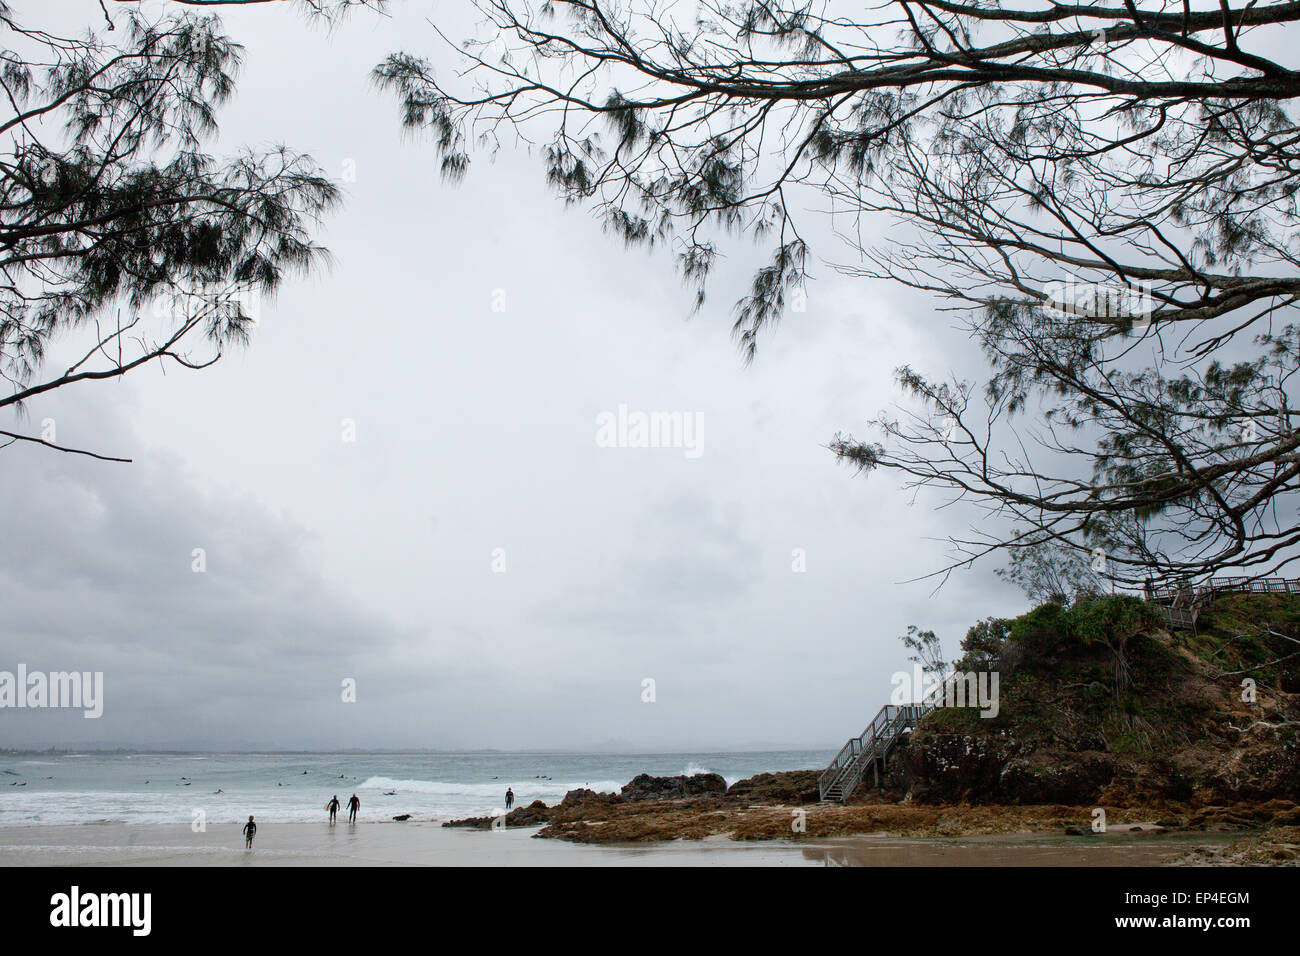 A wideshot of the pass in the Byron Bay, Australia a well known surf spot. - Stock Image